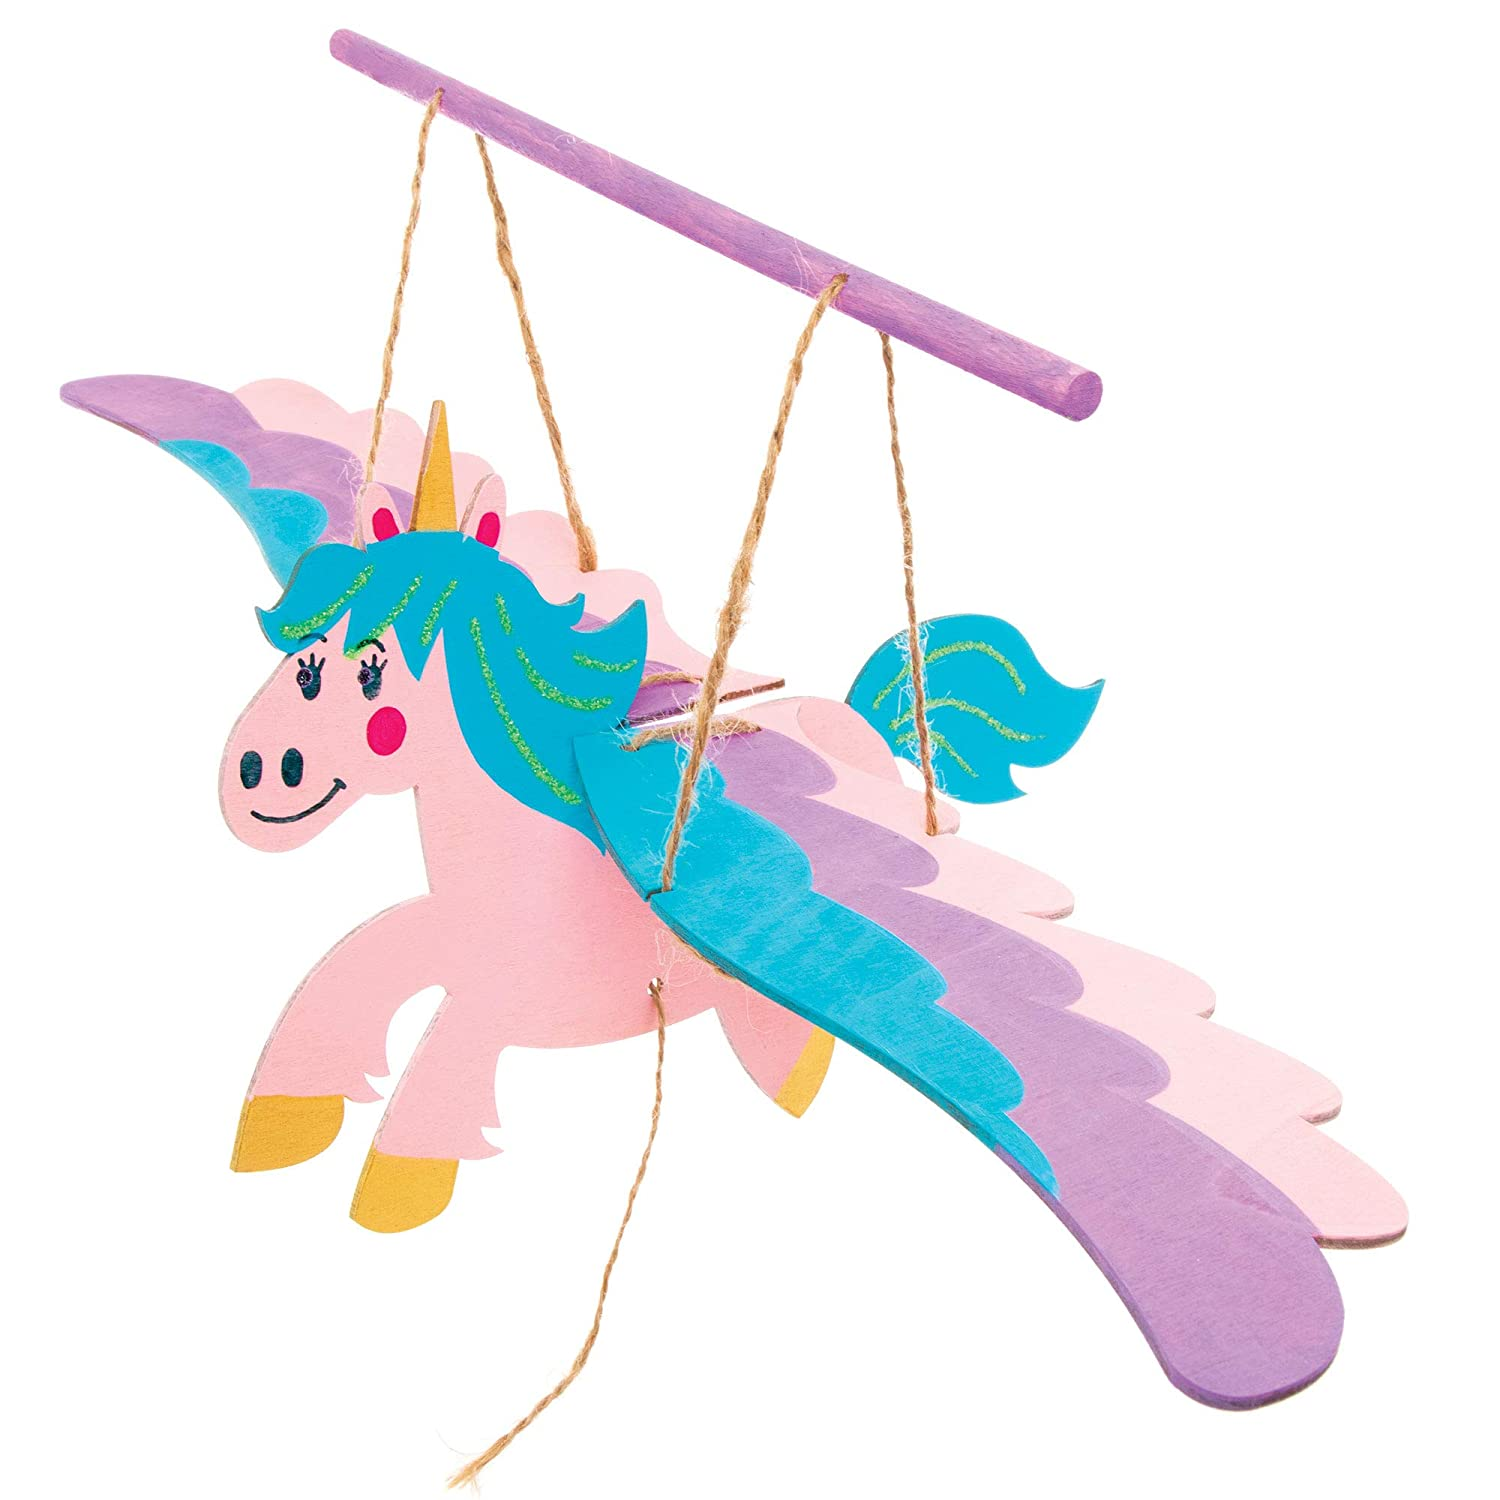 Pack of 3 Moving Unicorn Puppet for Children to Build and Design Baker Ross AT384 Unicorn Wooden Puppet Kits